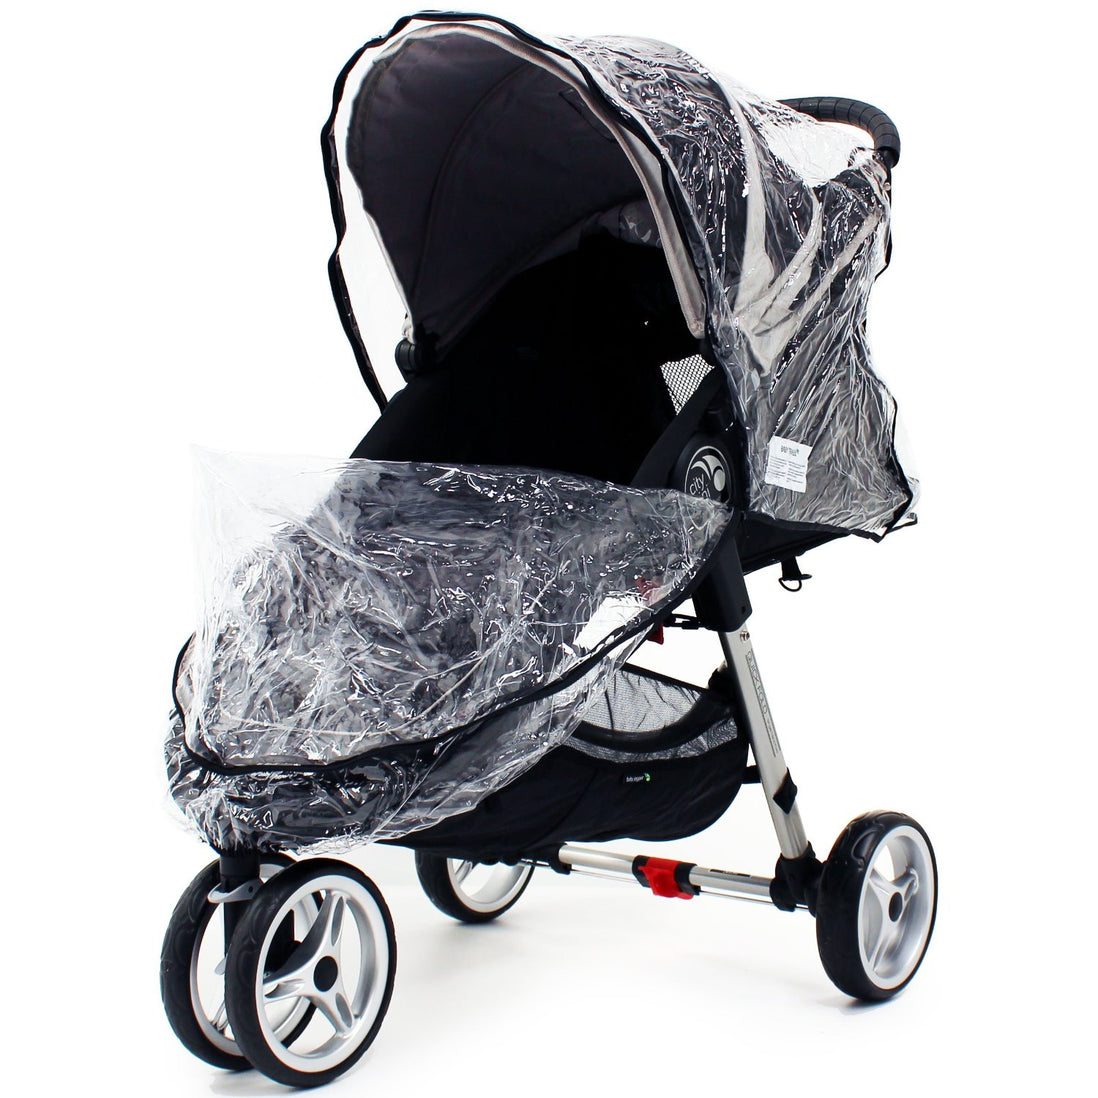 UNIVERSAL RAIN COVER FIT PUSHCHAIR PRAM STROLLER BUGGY BABY JOGGER CARRY-COT UK